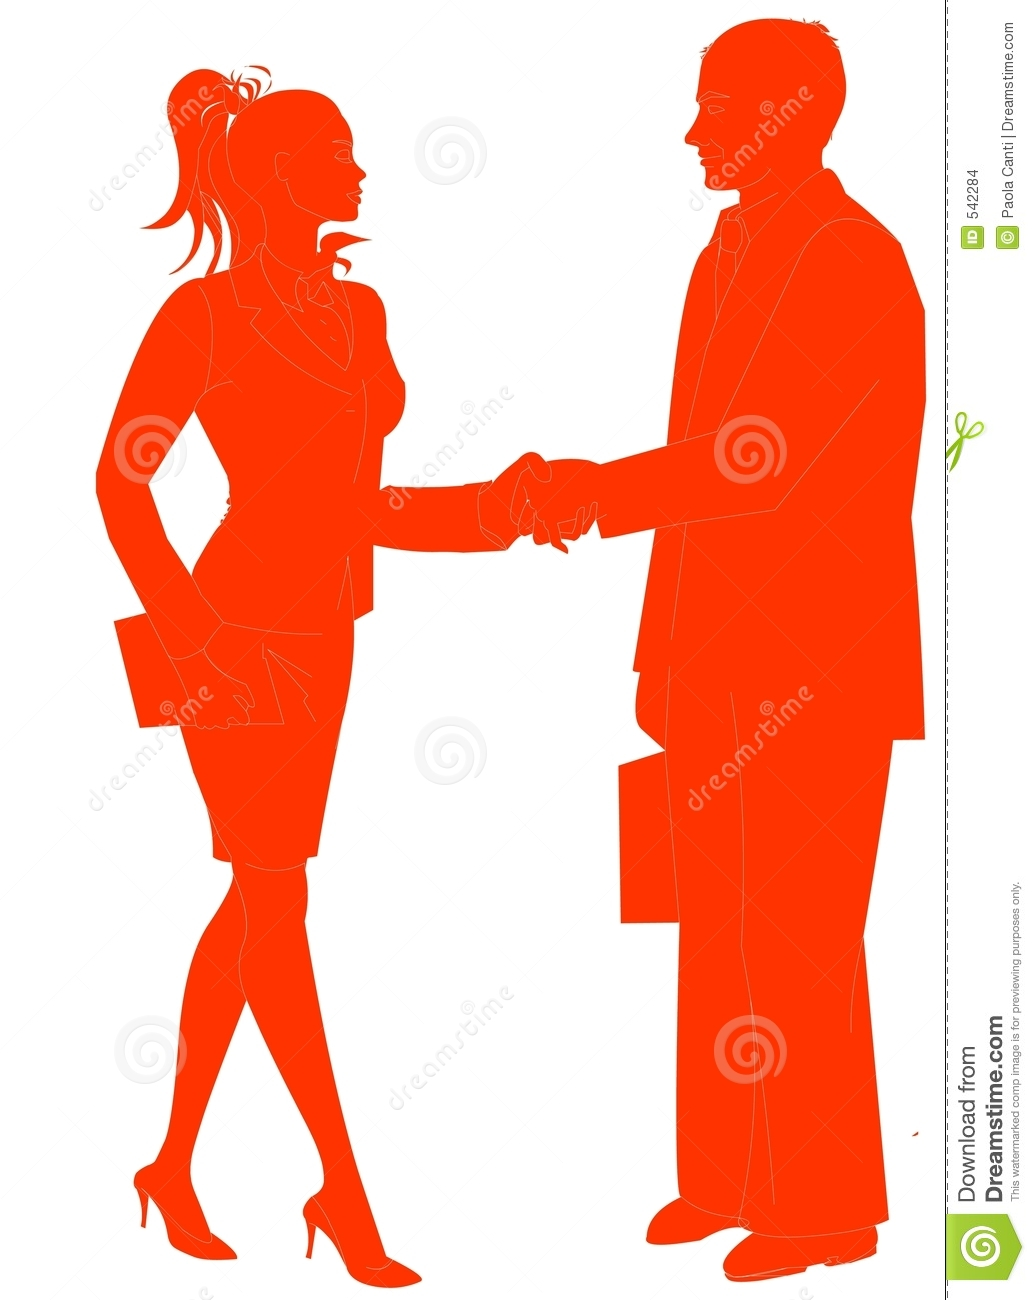 Business People Silhouette Shaking Hands Business People Shaking Hands